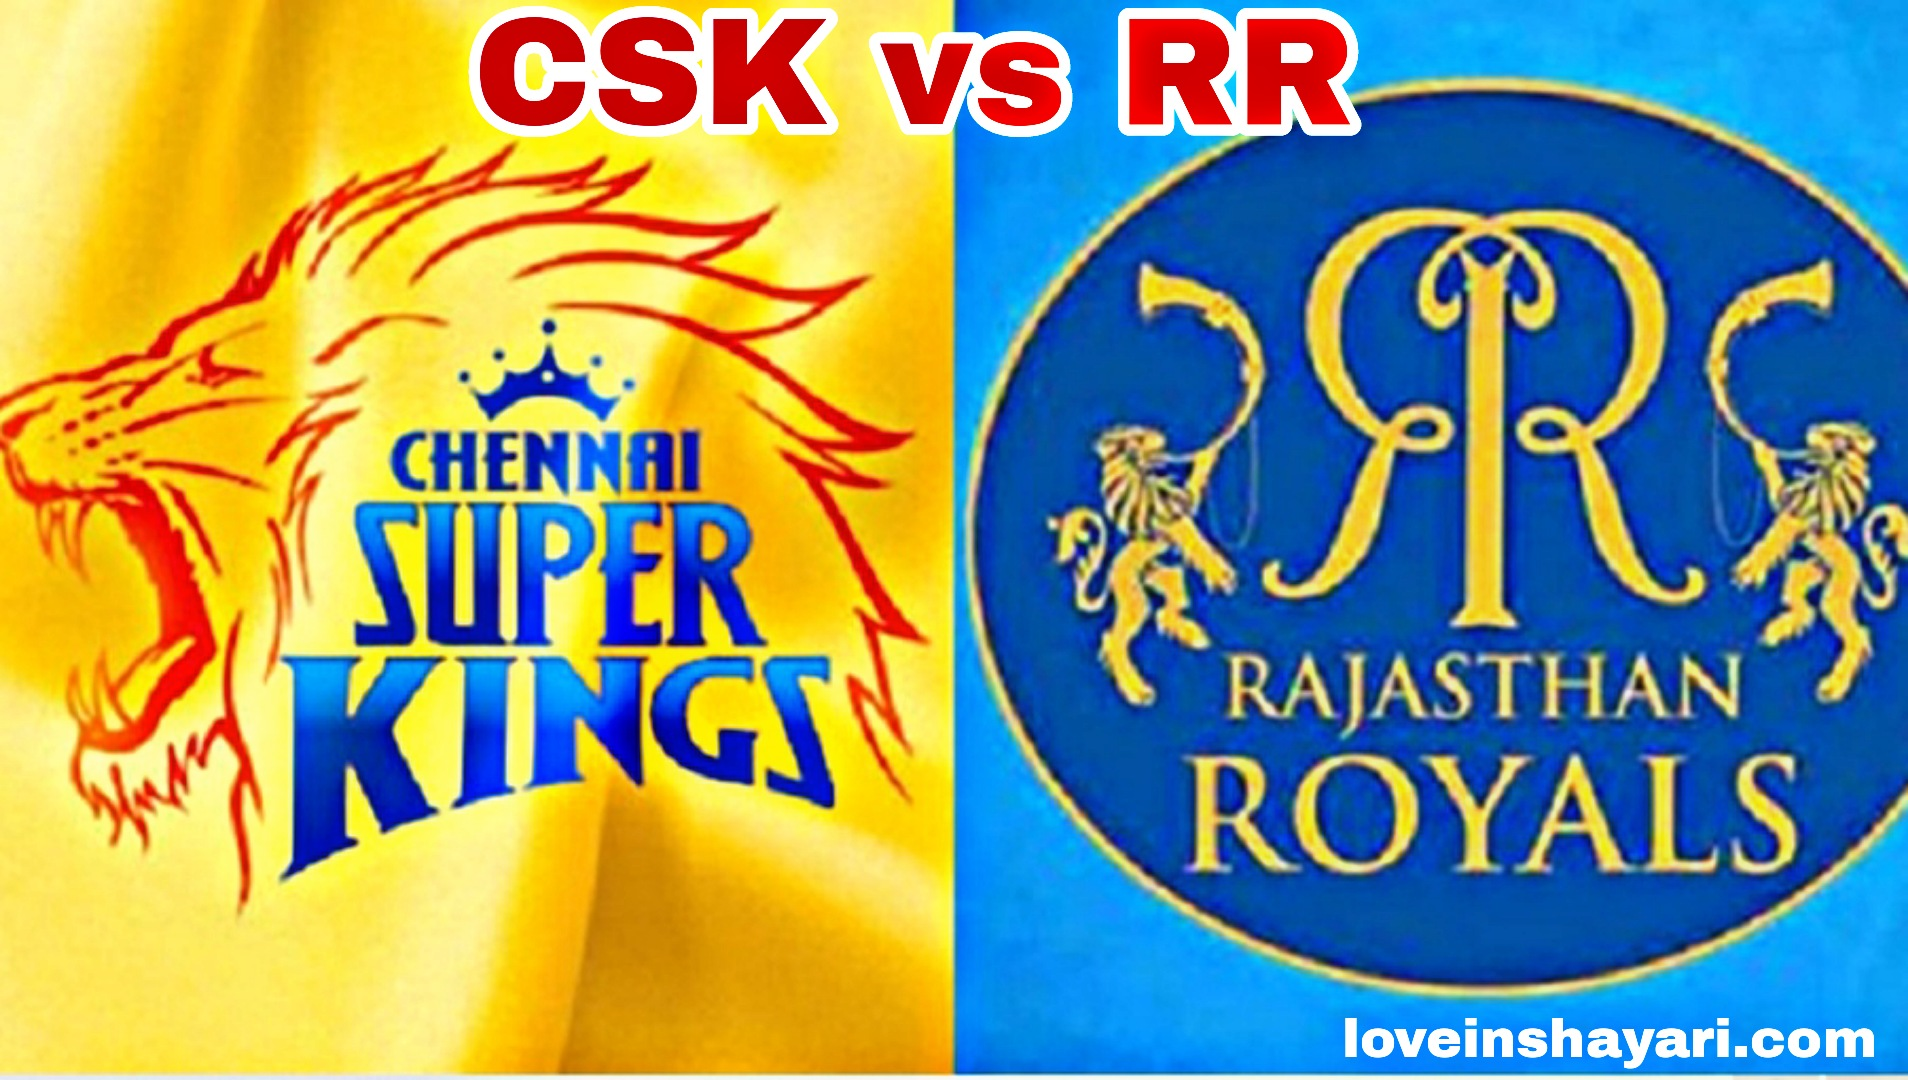 Photo of CSK vs RR status whatsapp status 2020